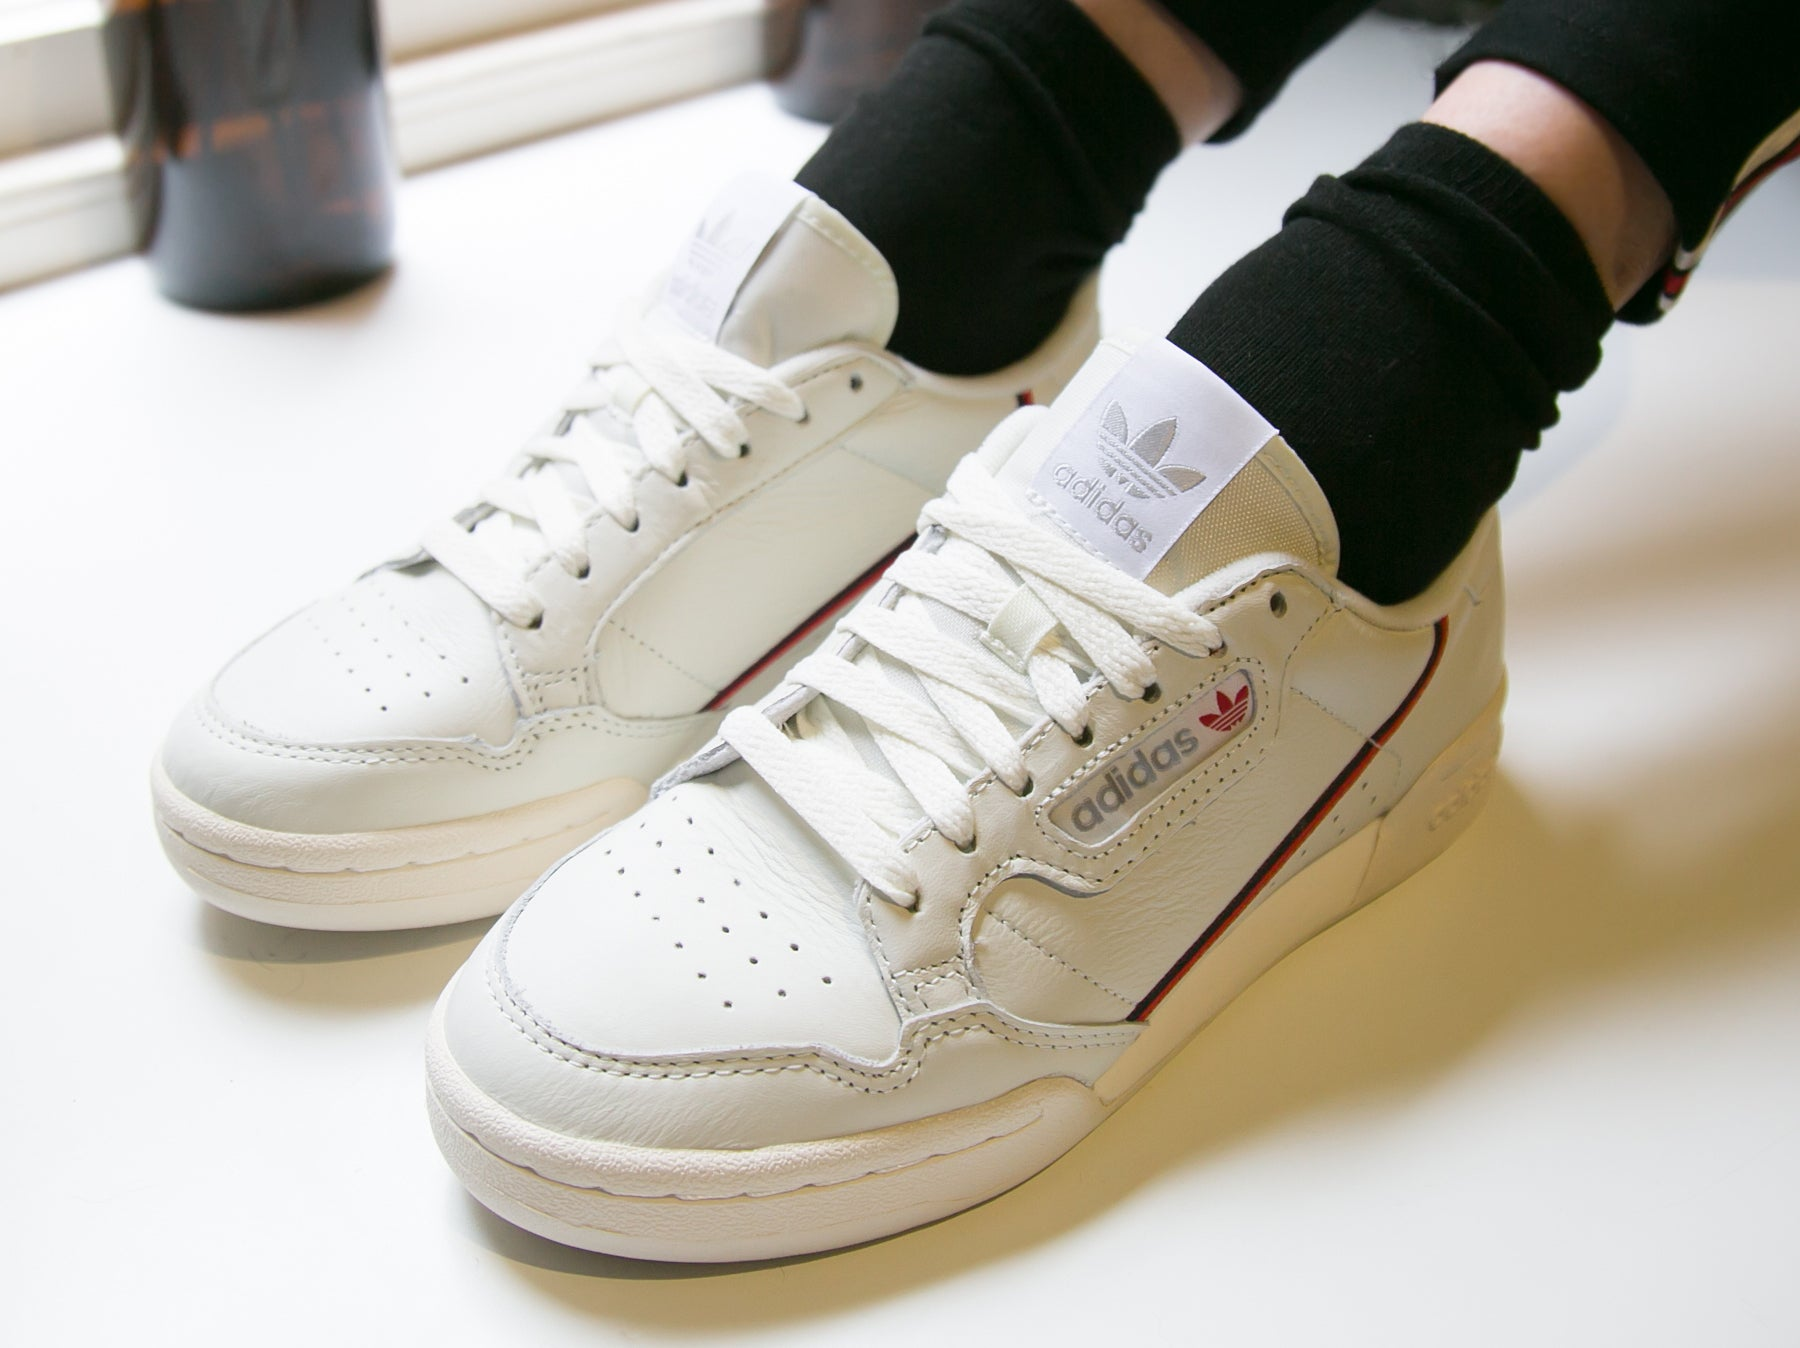 new concept 2dd7a 313a7 SNEAKER RELEASES   adidas Continental 80   June 21